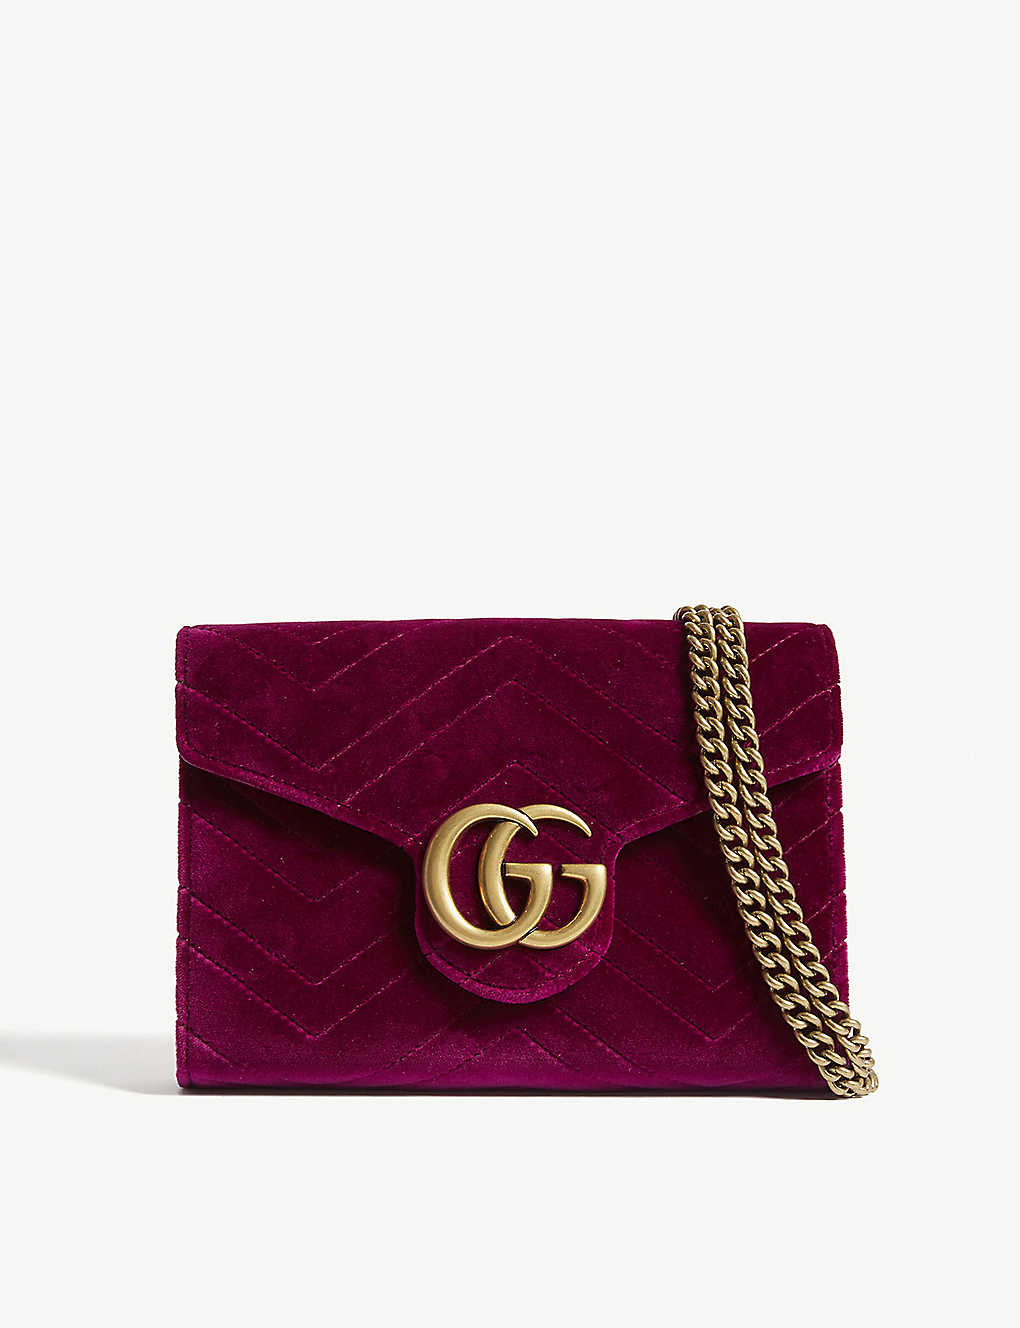 73821abebd1c GUCCI - Marmont GG velvet wallet-on-chain | Selfridges.com